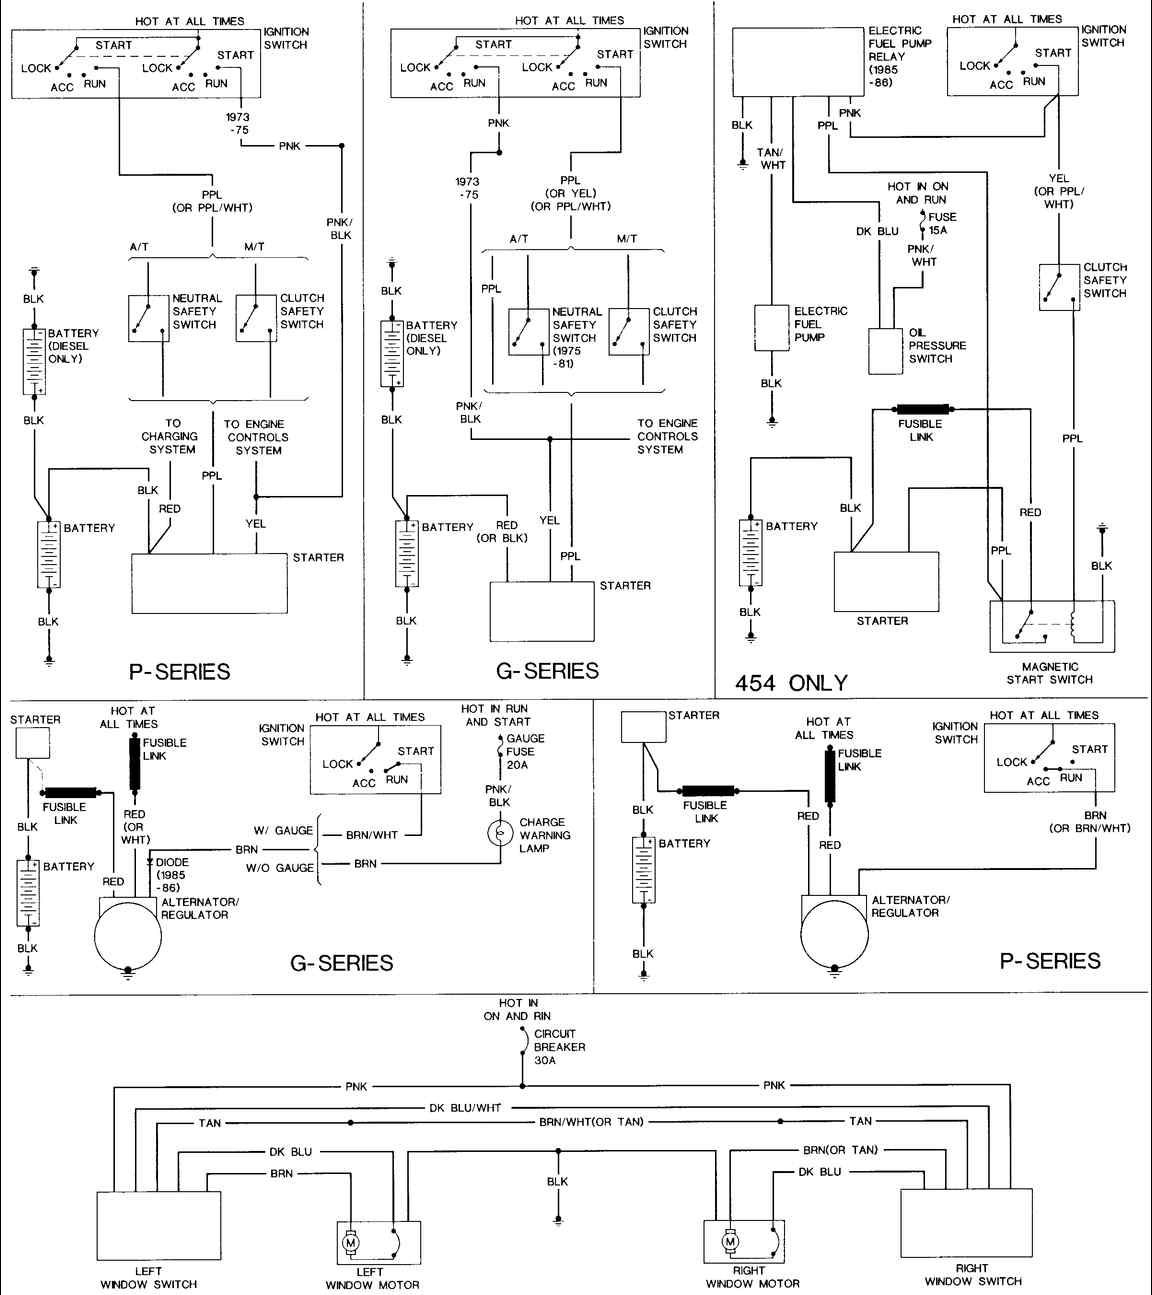 small resolution of 1979 gmc wiring diagram electrical schematics diagram rh culturetearoom com 1979 yamaha xt500 wiring diagram 1979